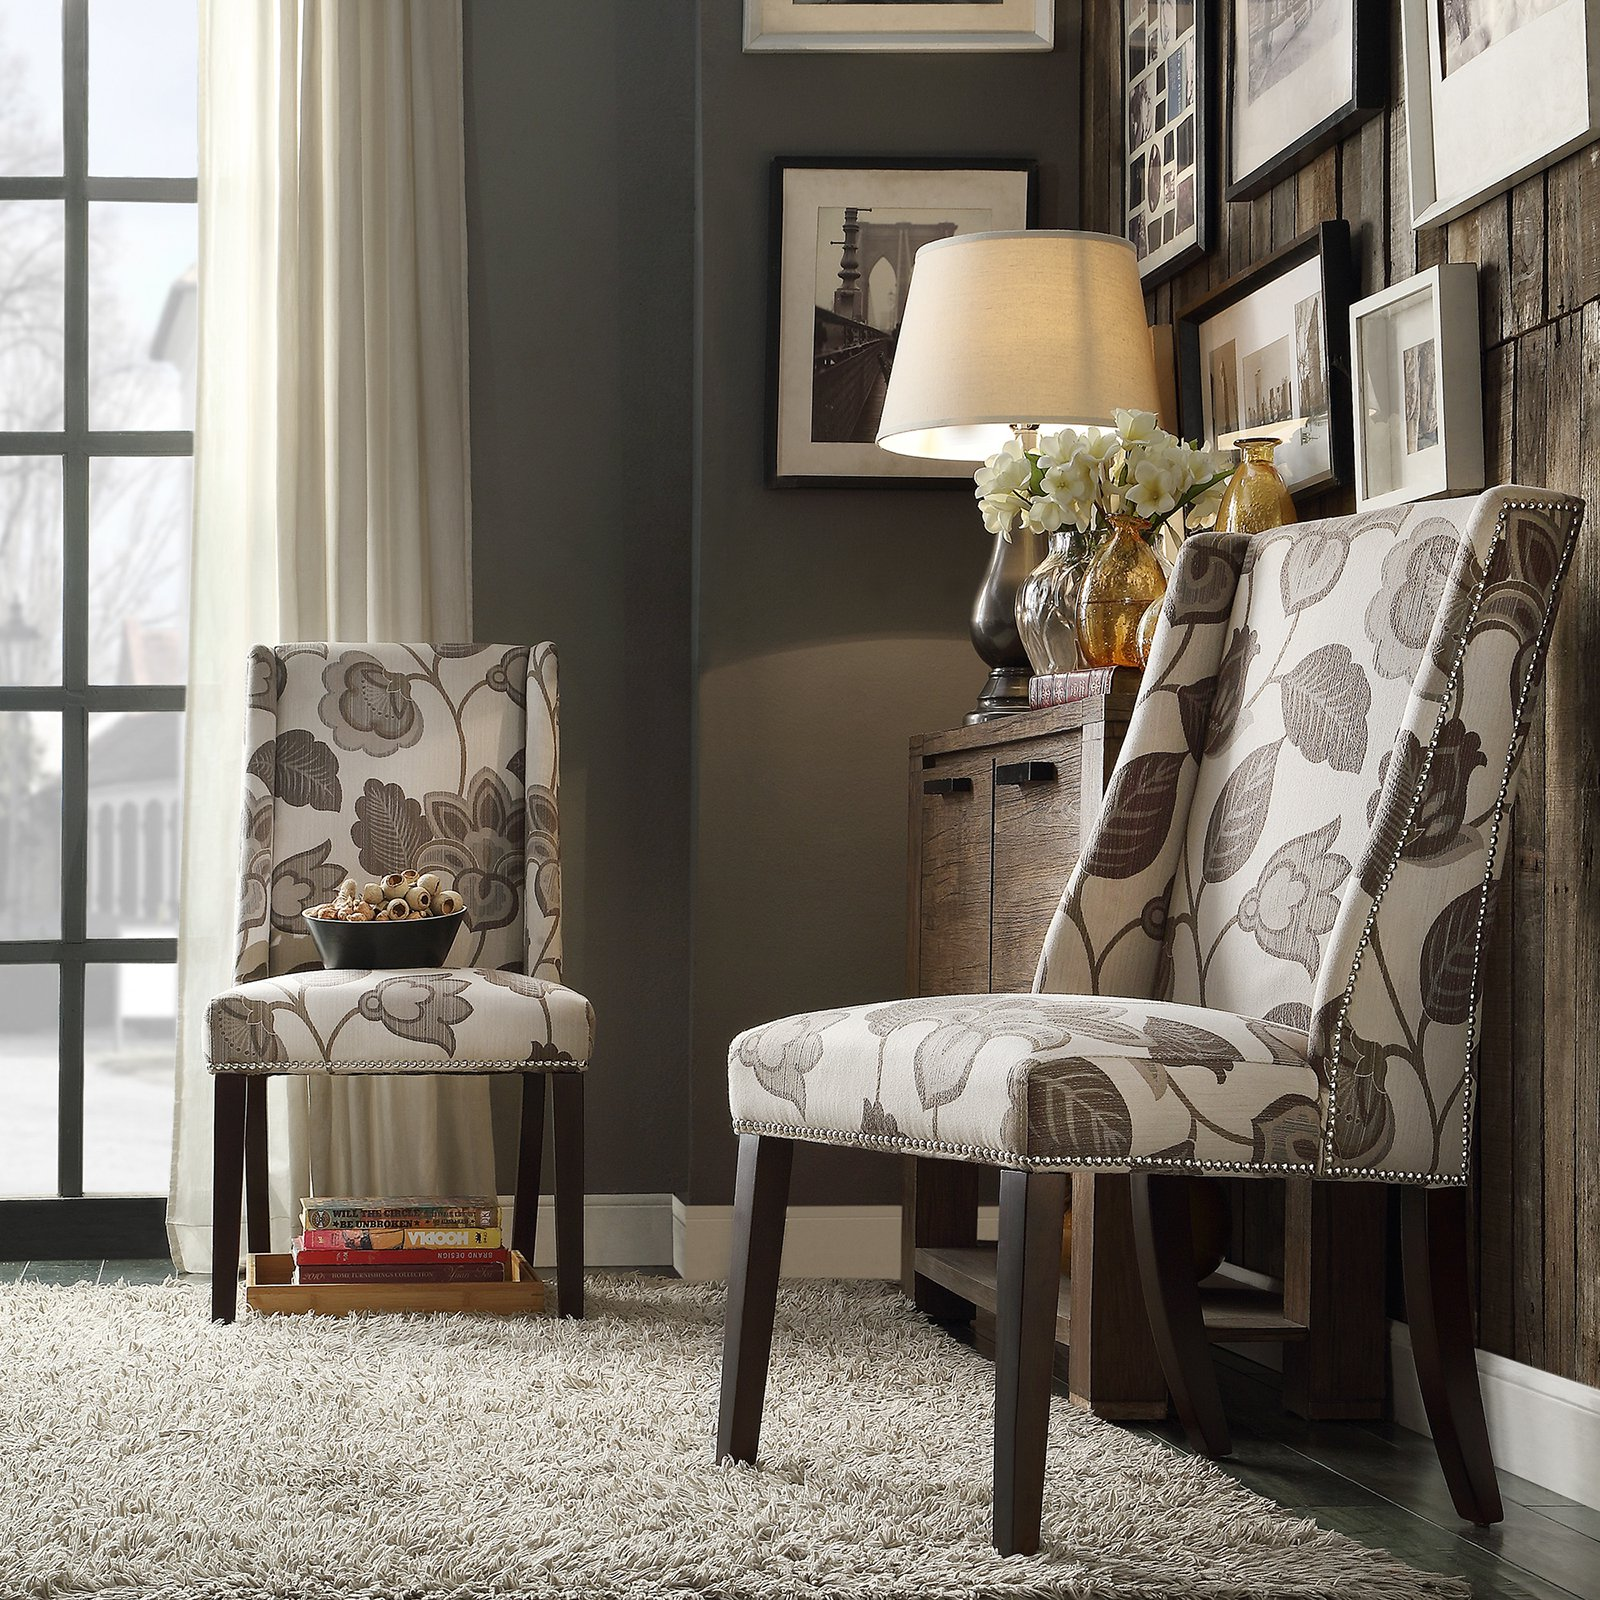 High Quality Chelsea Lane Classic Gray Flower With Leaves Print Wingback With Nailhead Accent  Chair   Set Of